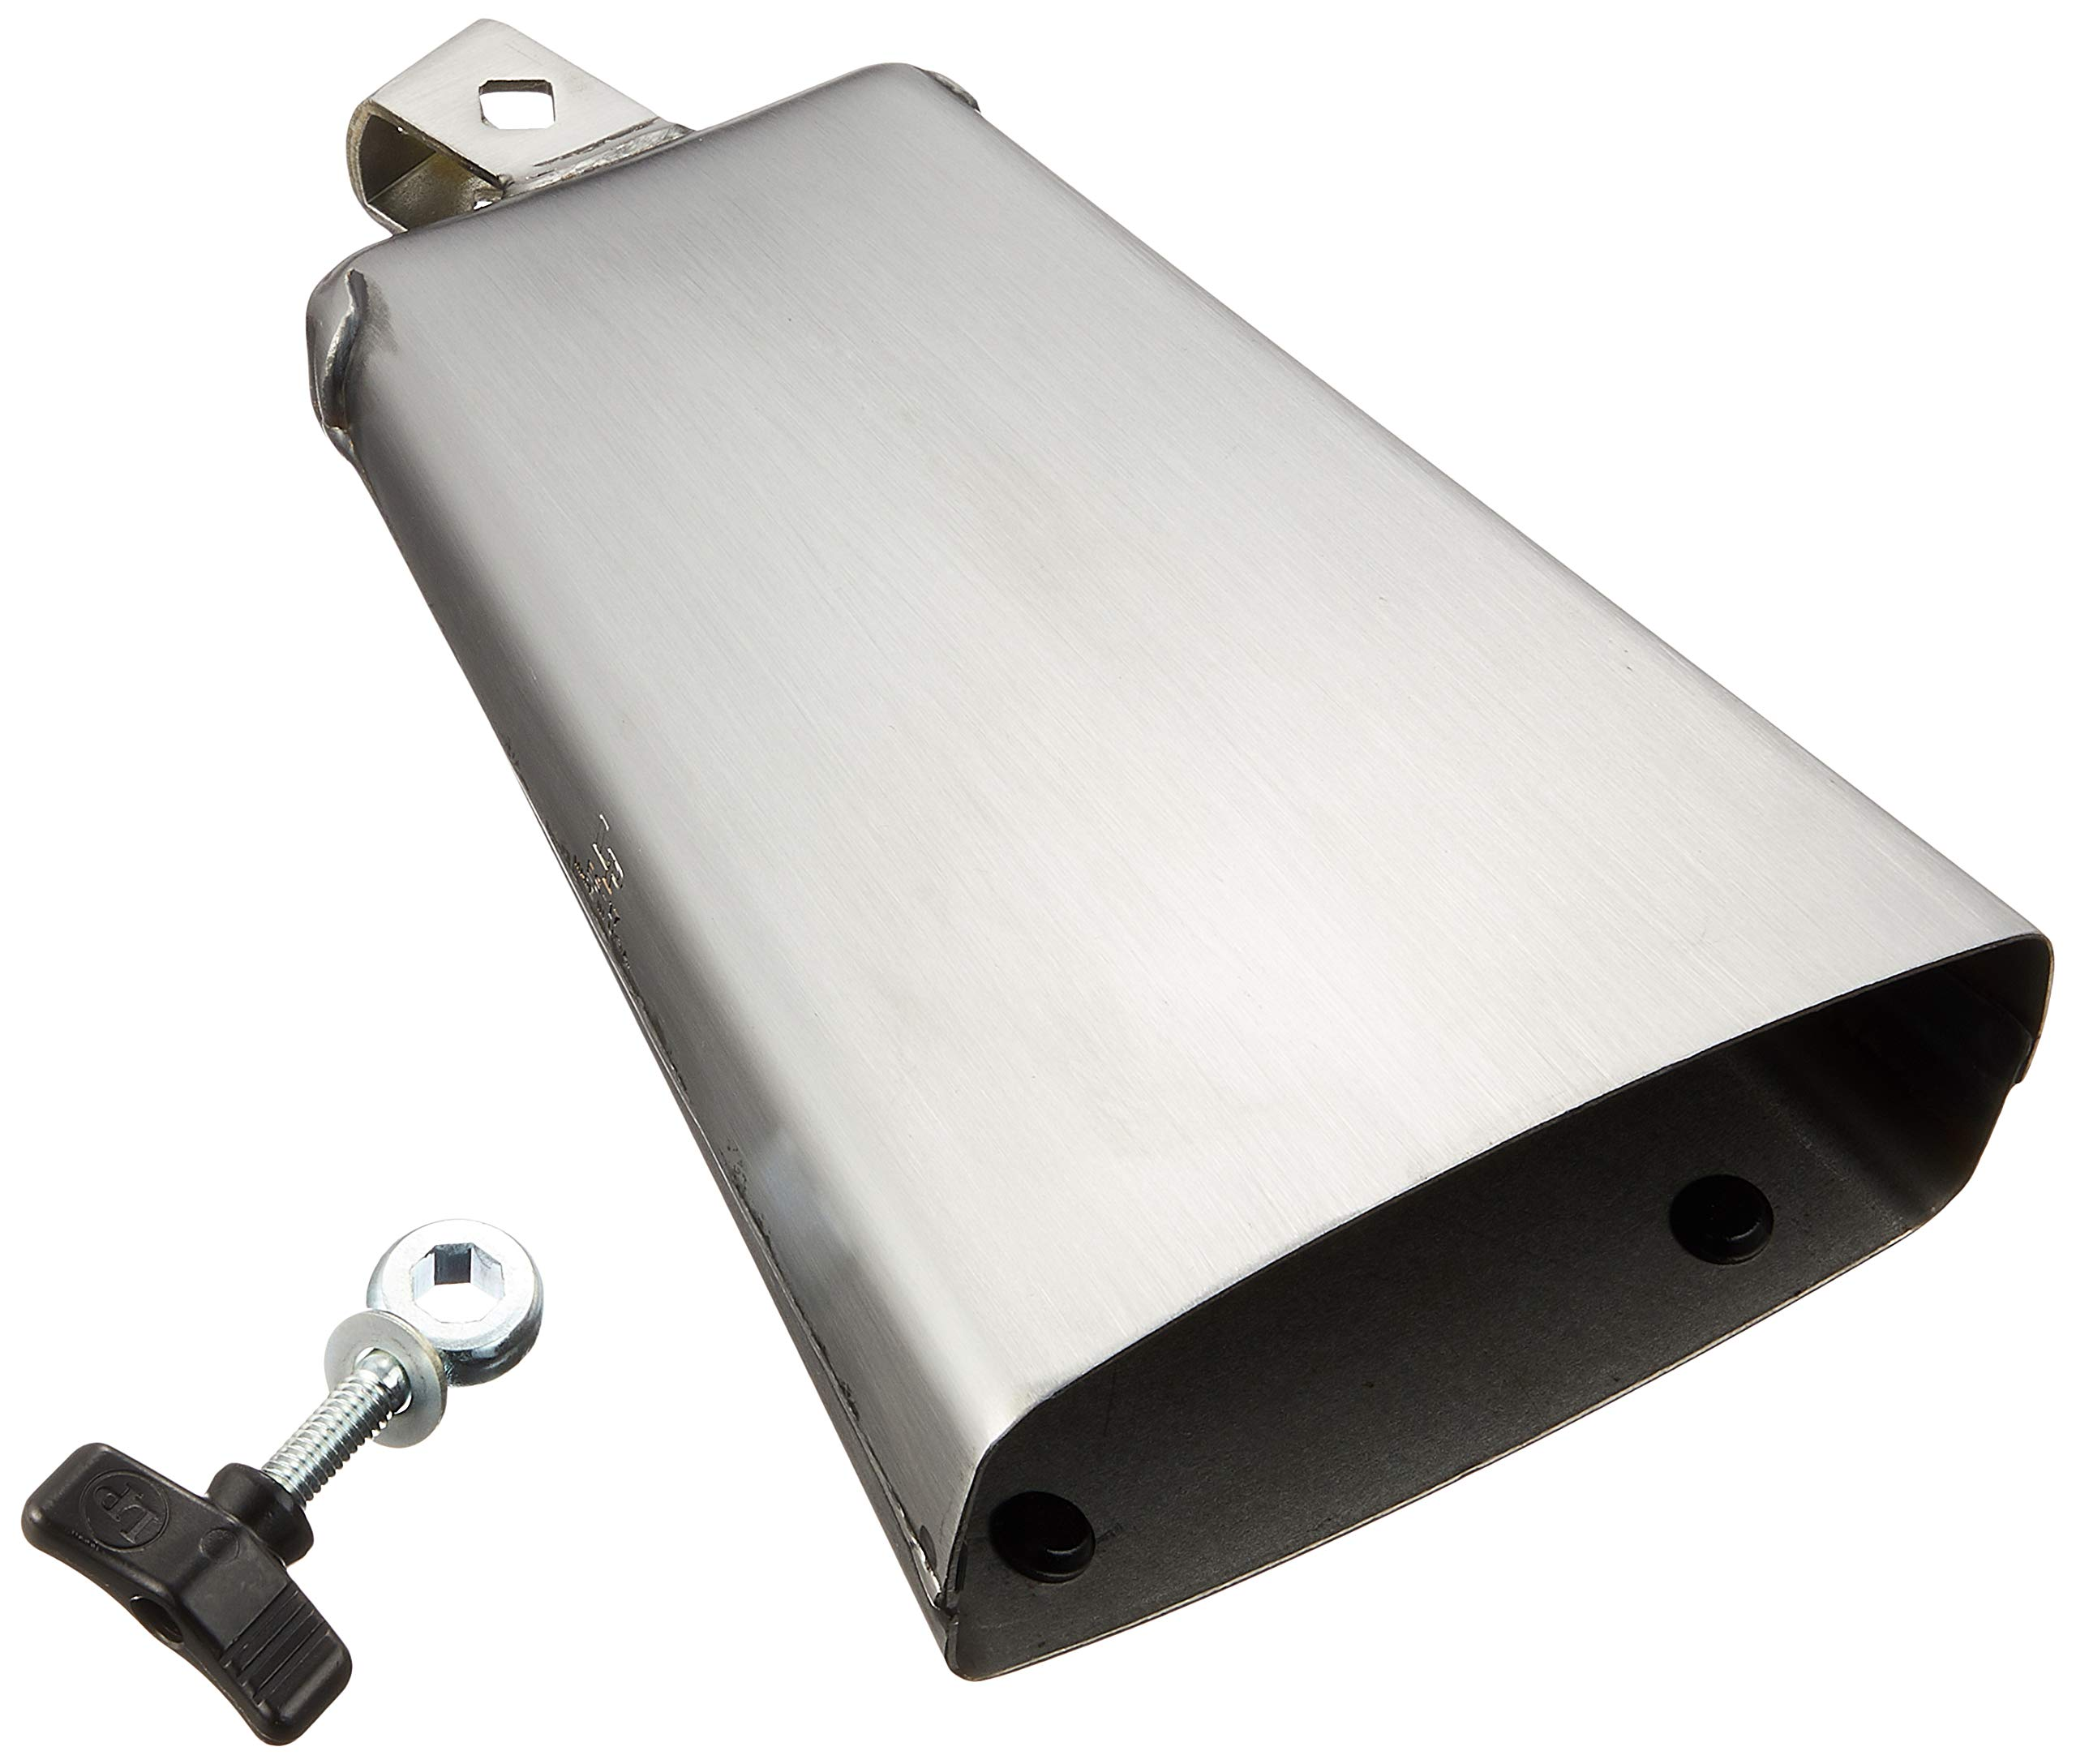 ES-17 Big Band Salsa Cowbell by Latin Percussion